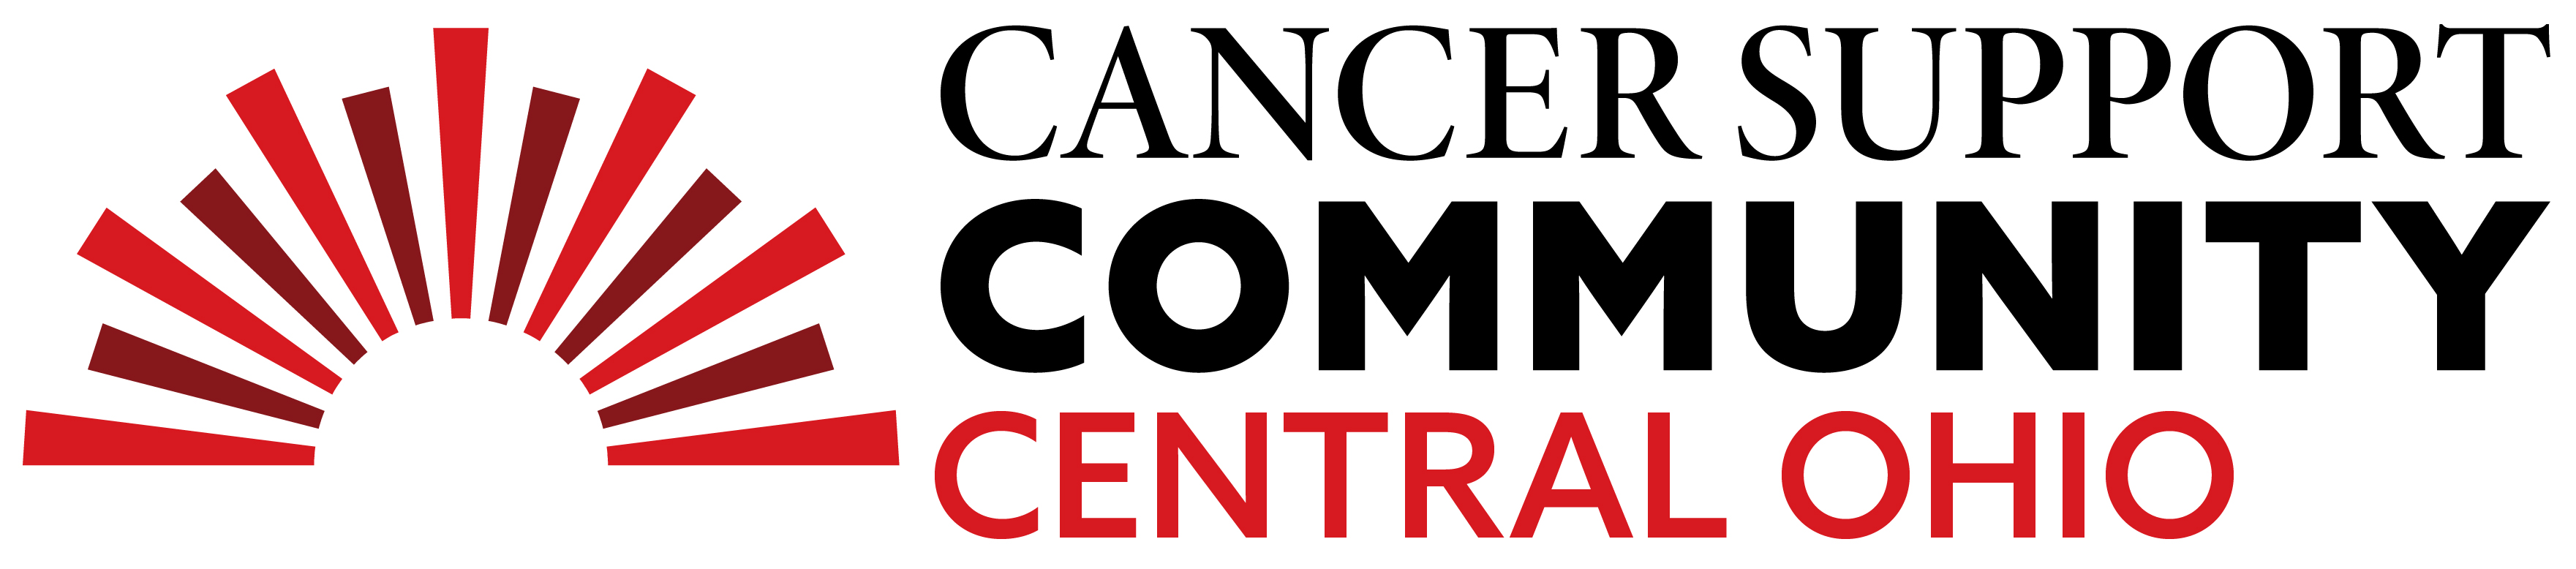 Cancer Support Community Central Ohio